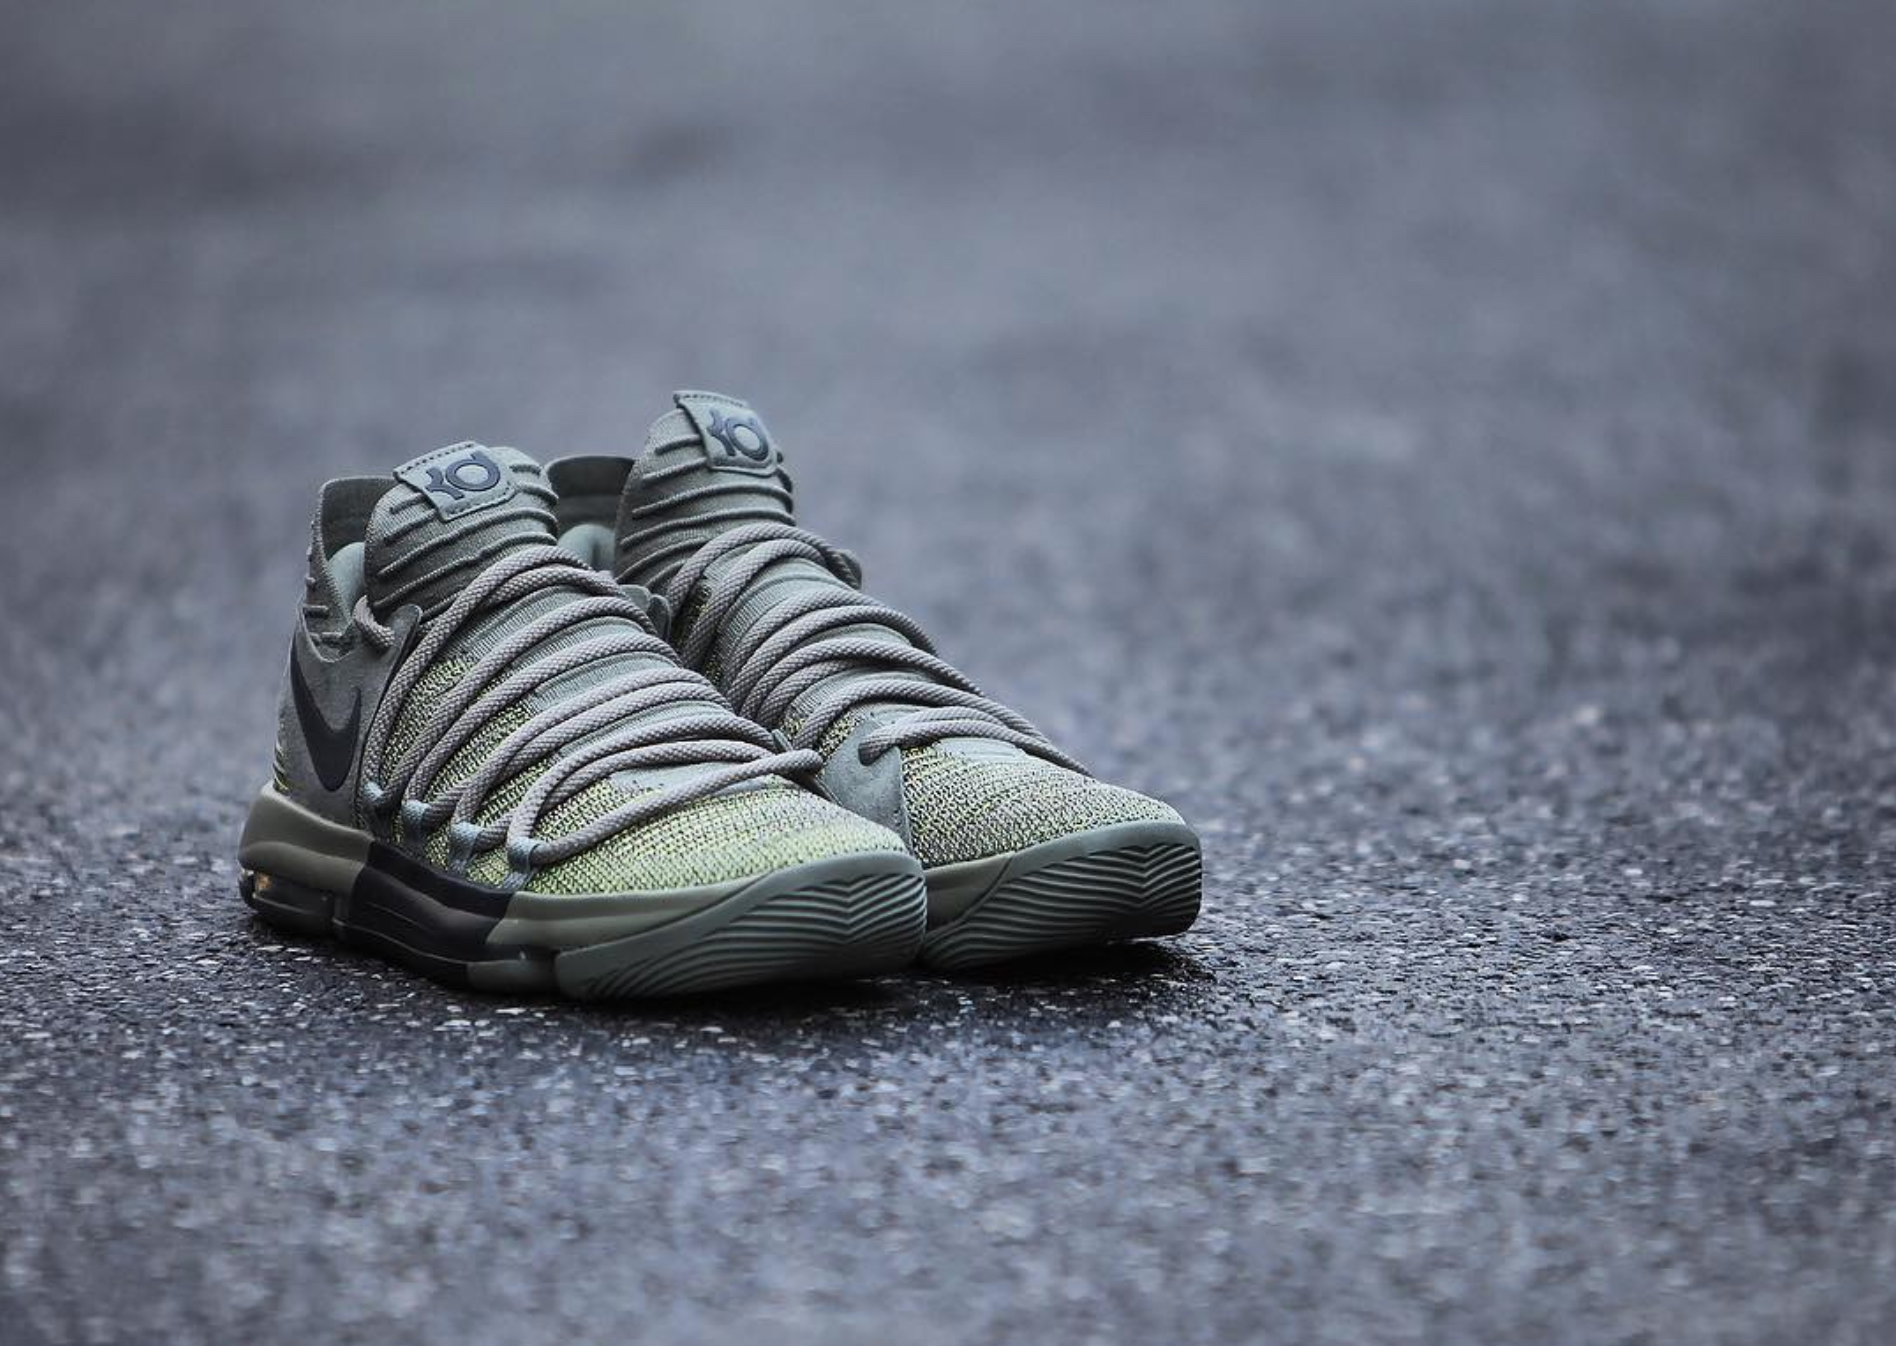 online store 837bd 8a544 Detailed Look at a Limited Edition Nike KD 10 Coming Soon ...